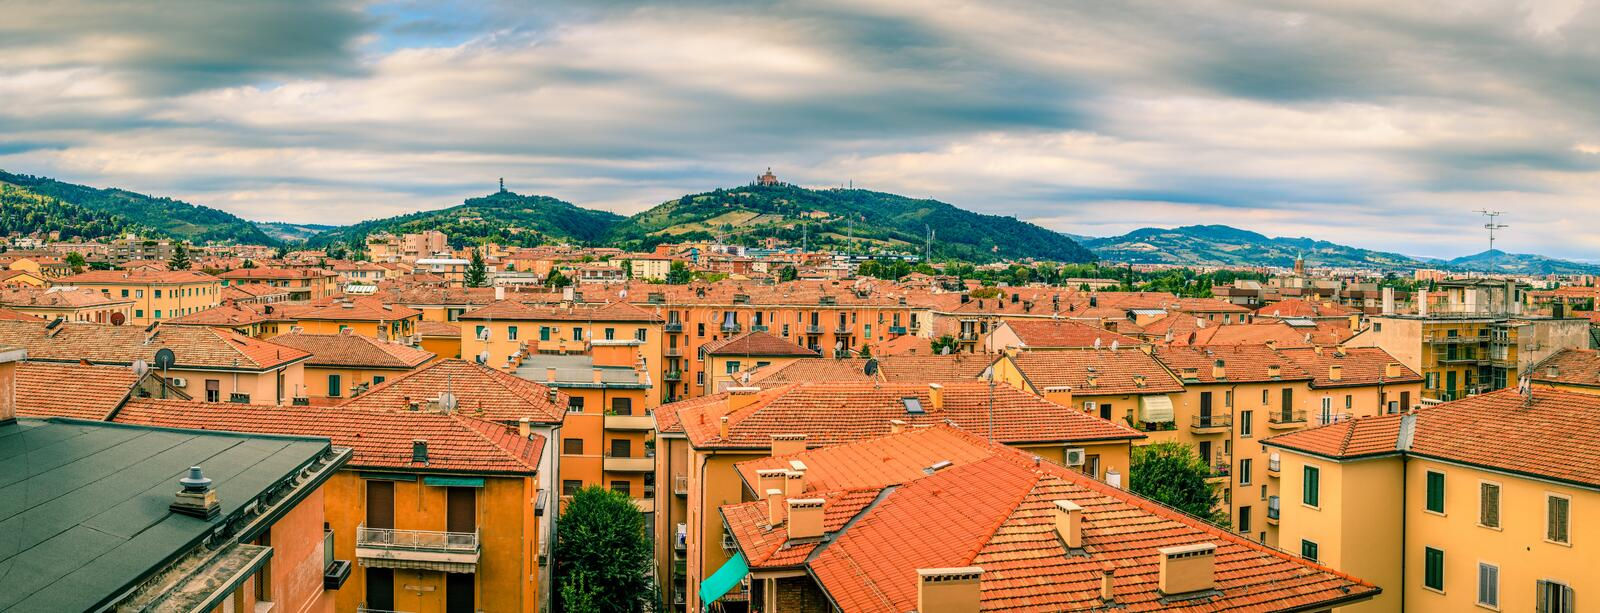 Rooftops of Bologna stock photo